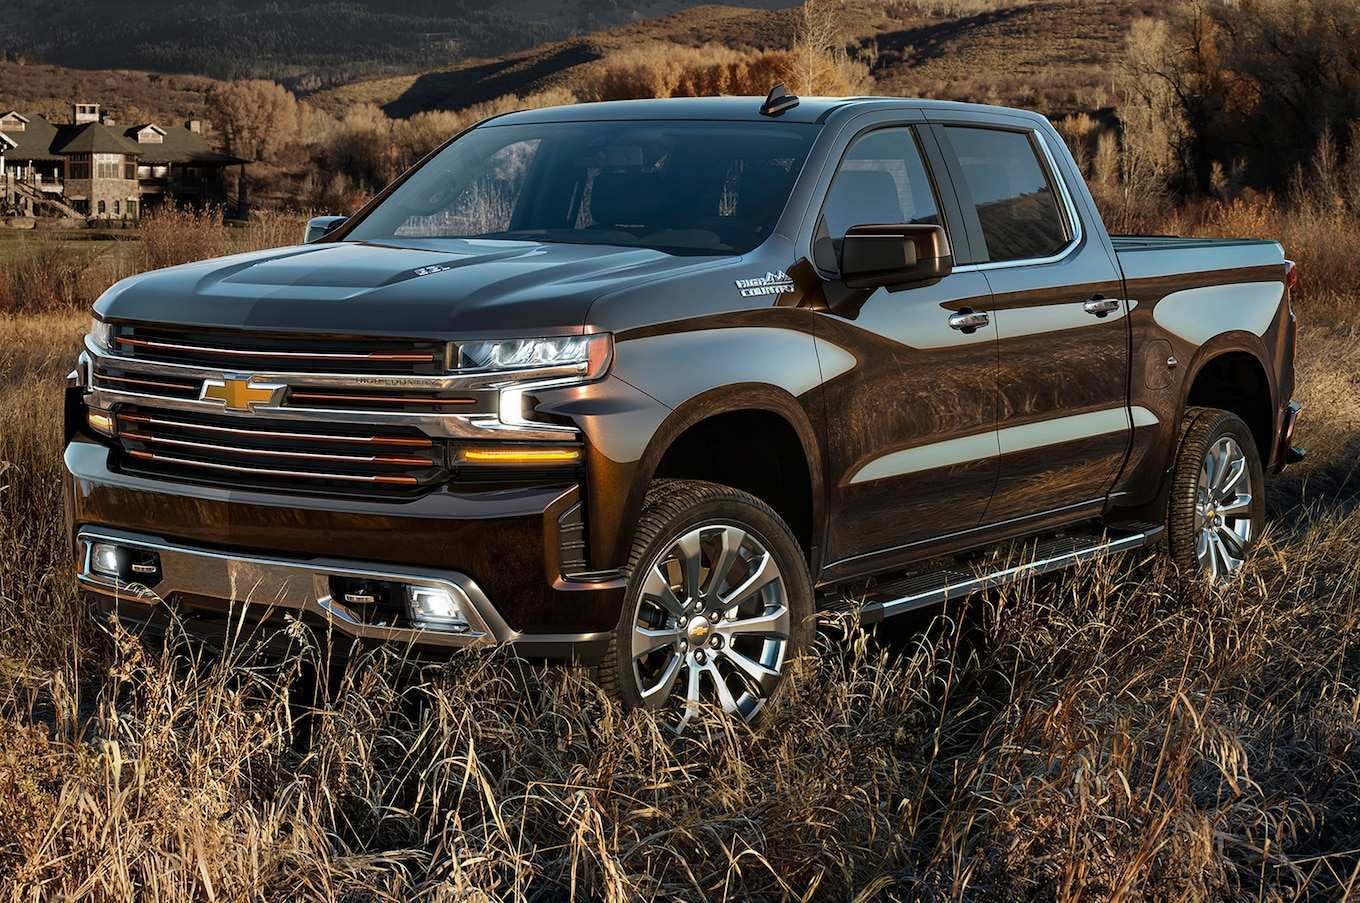 71 All New 2019 Chevrolet Release Prices for 2019 Chevrolet Release